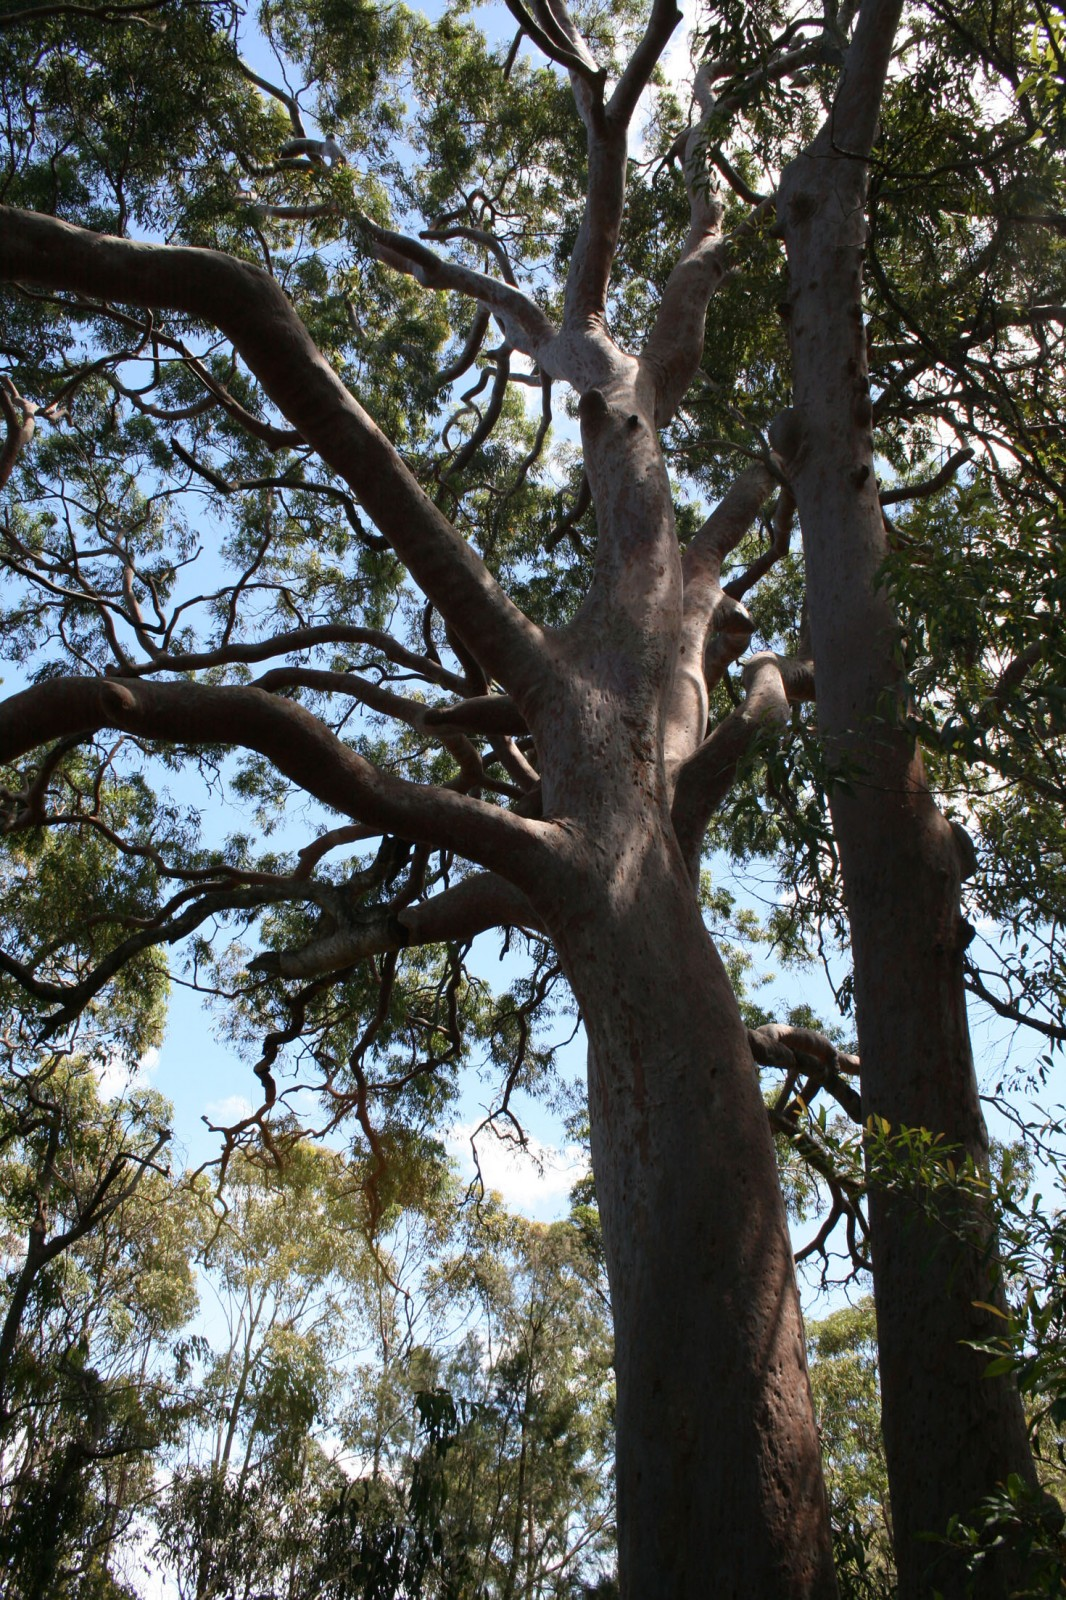 The ubiquitous Sydney Red Gum (Angophora costata) - a grand and significant tree that would have graced the shores of Sydney for millennia prior to 1788 and the arrival of Europeans.